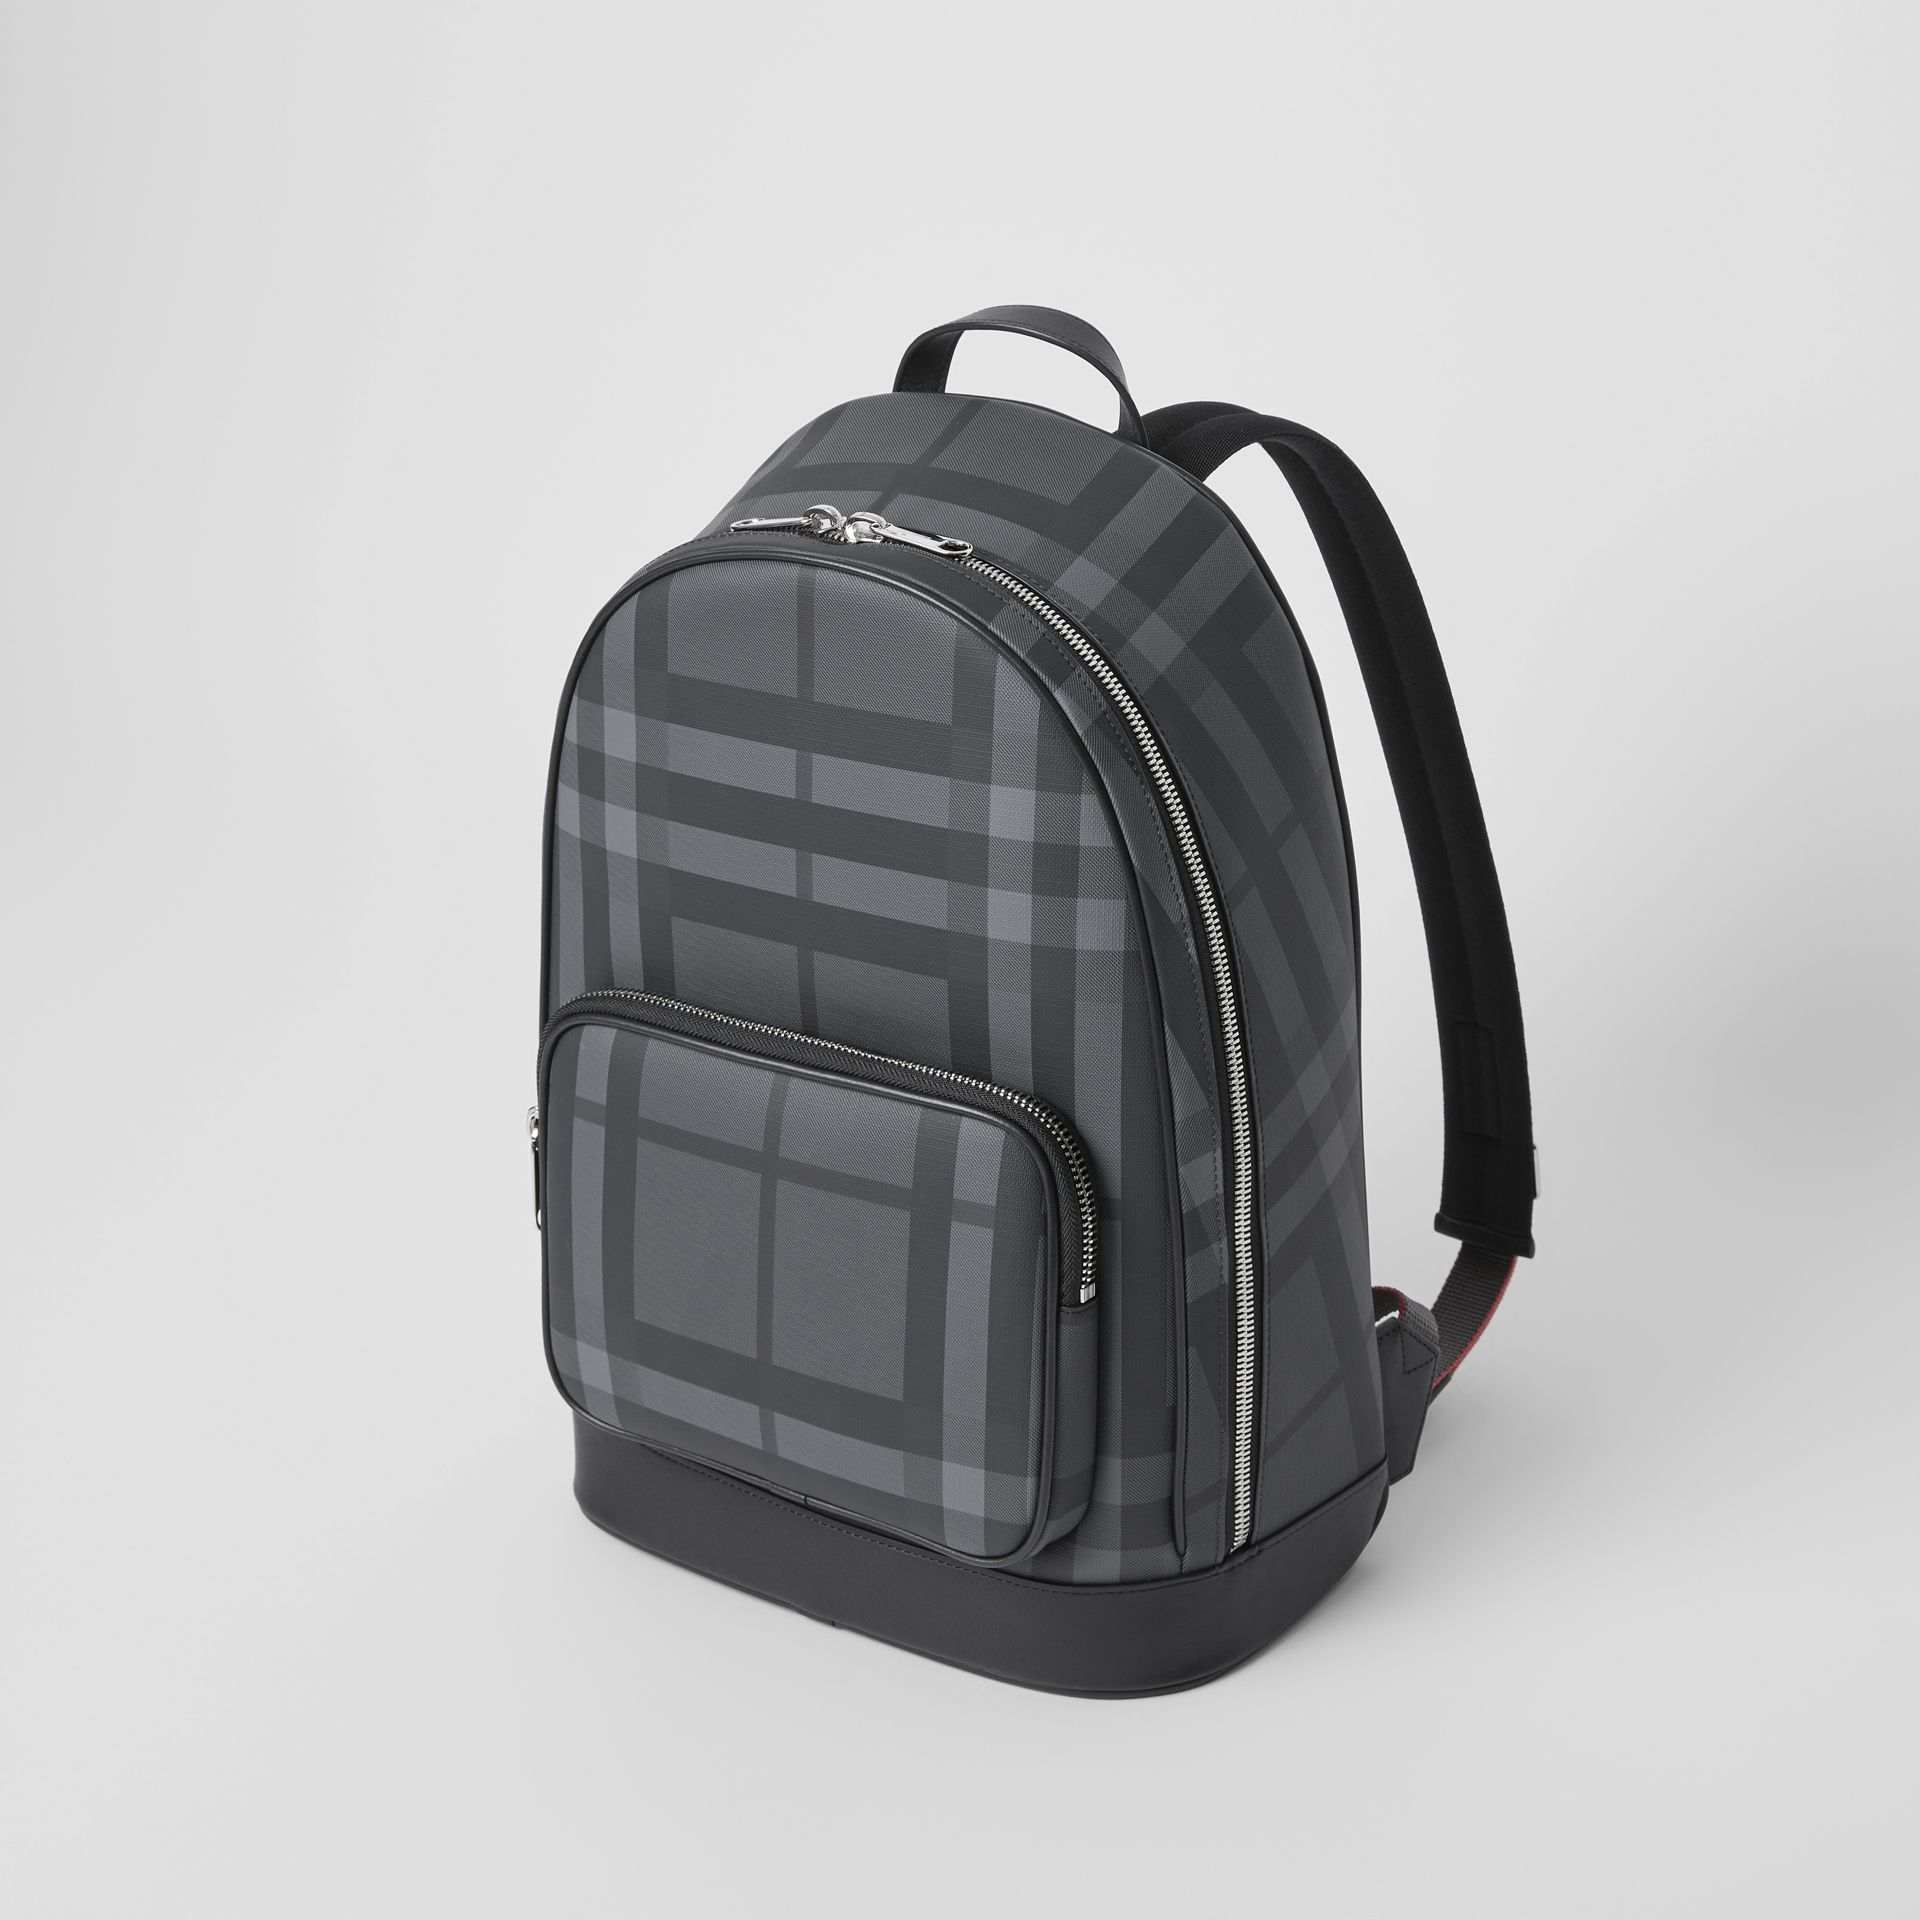 London Check and Leather Backpack in Charcoal/black - Men | Burberry United Kingdom - gallery image 4